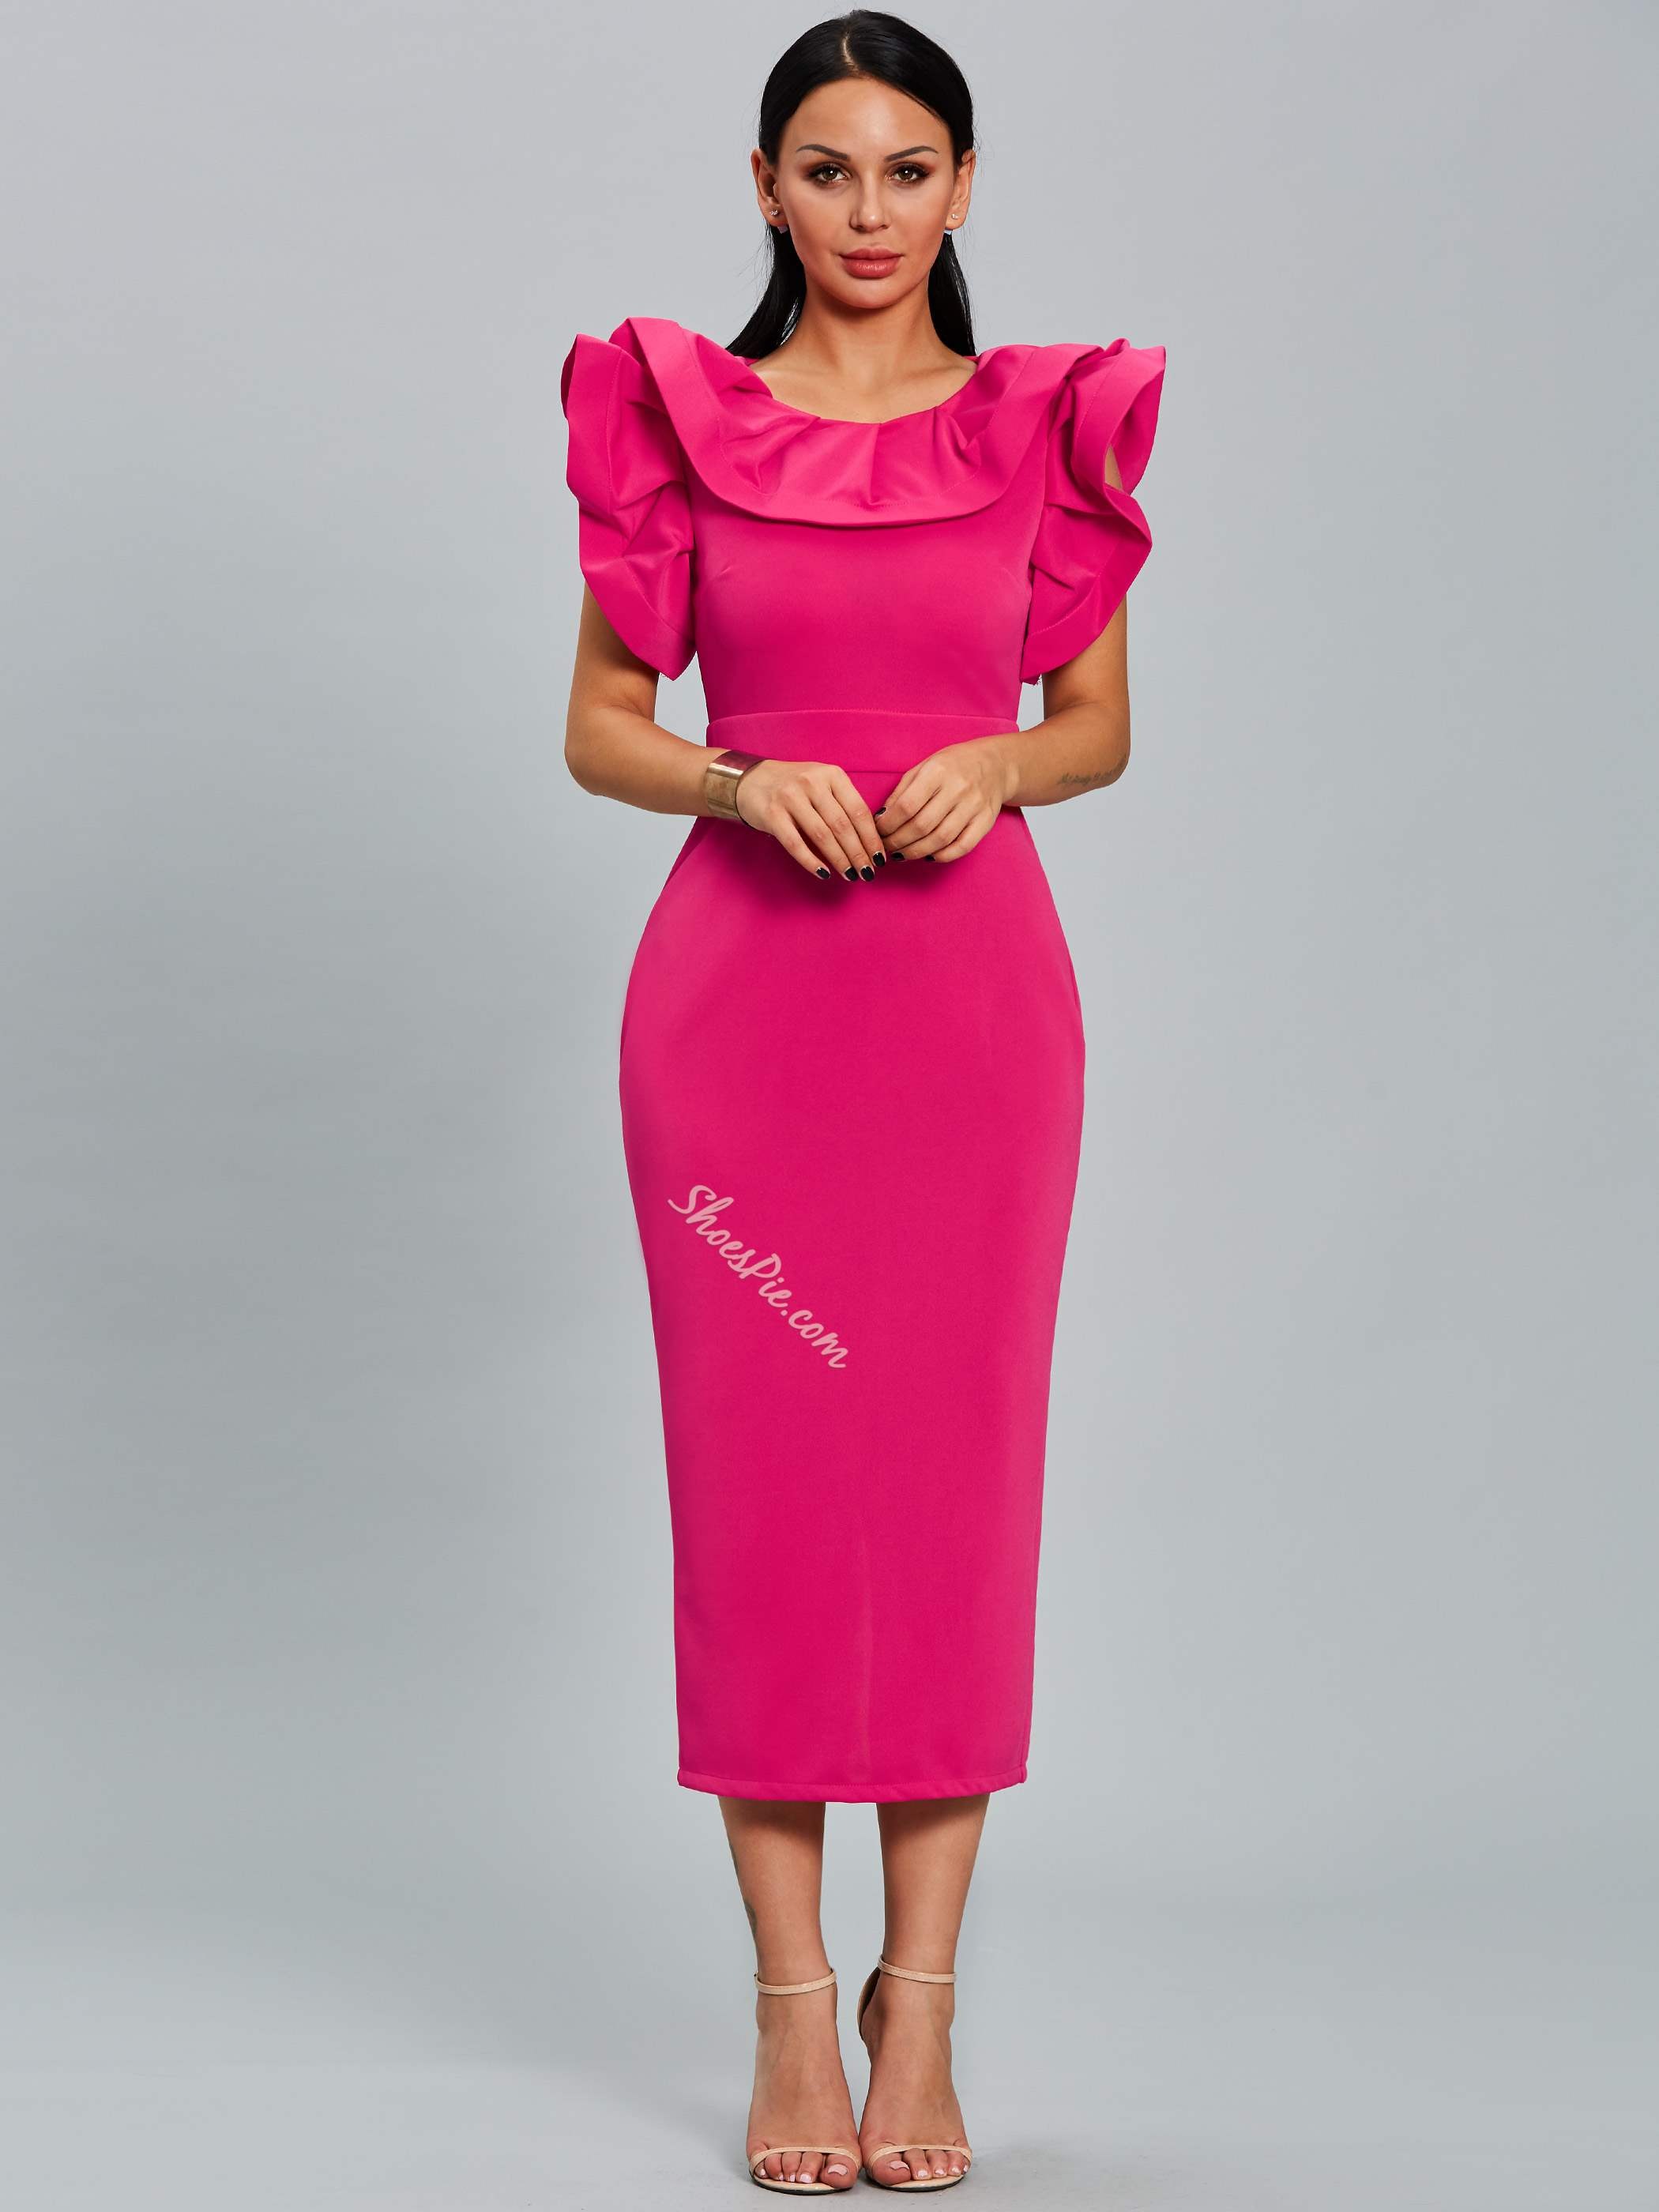 Falbala Ruffle Sleeve Round Neck Bodycon Dresses